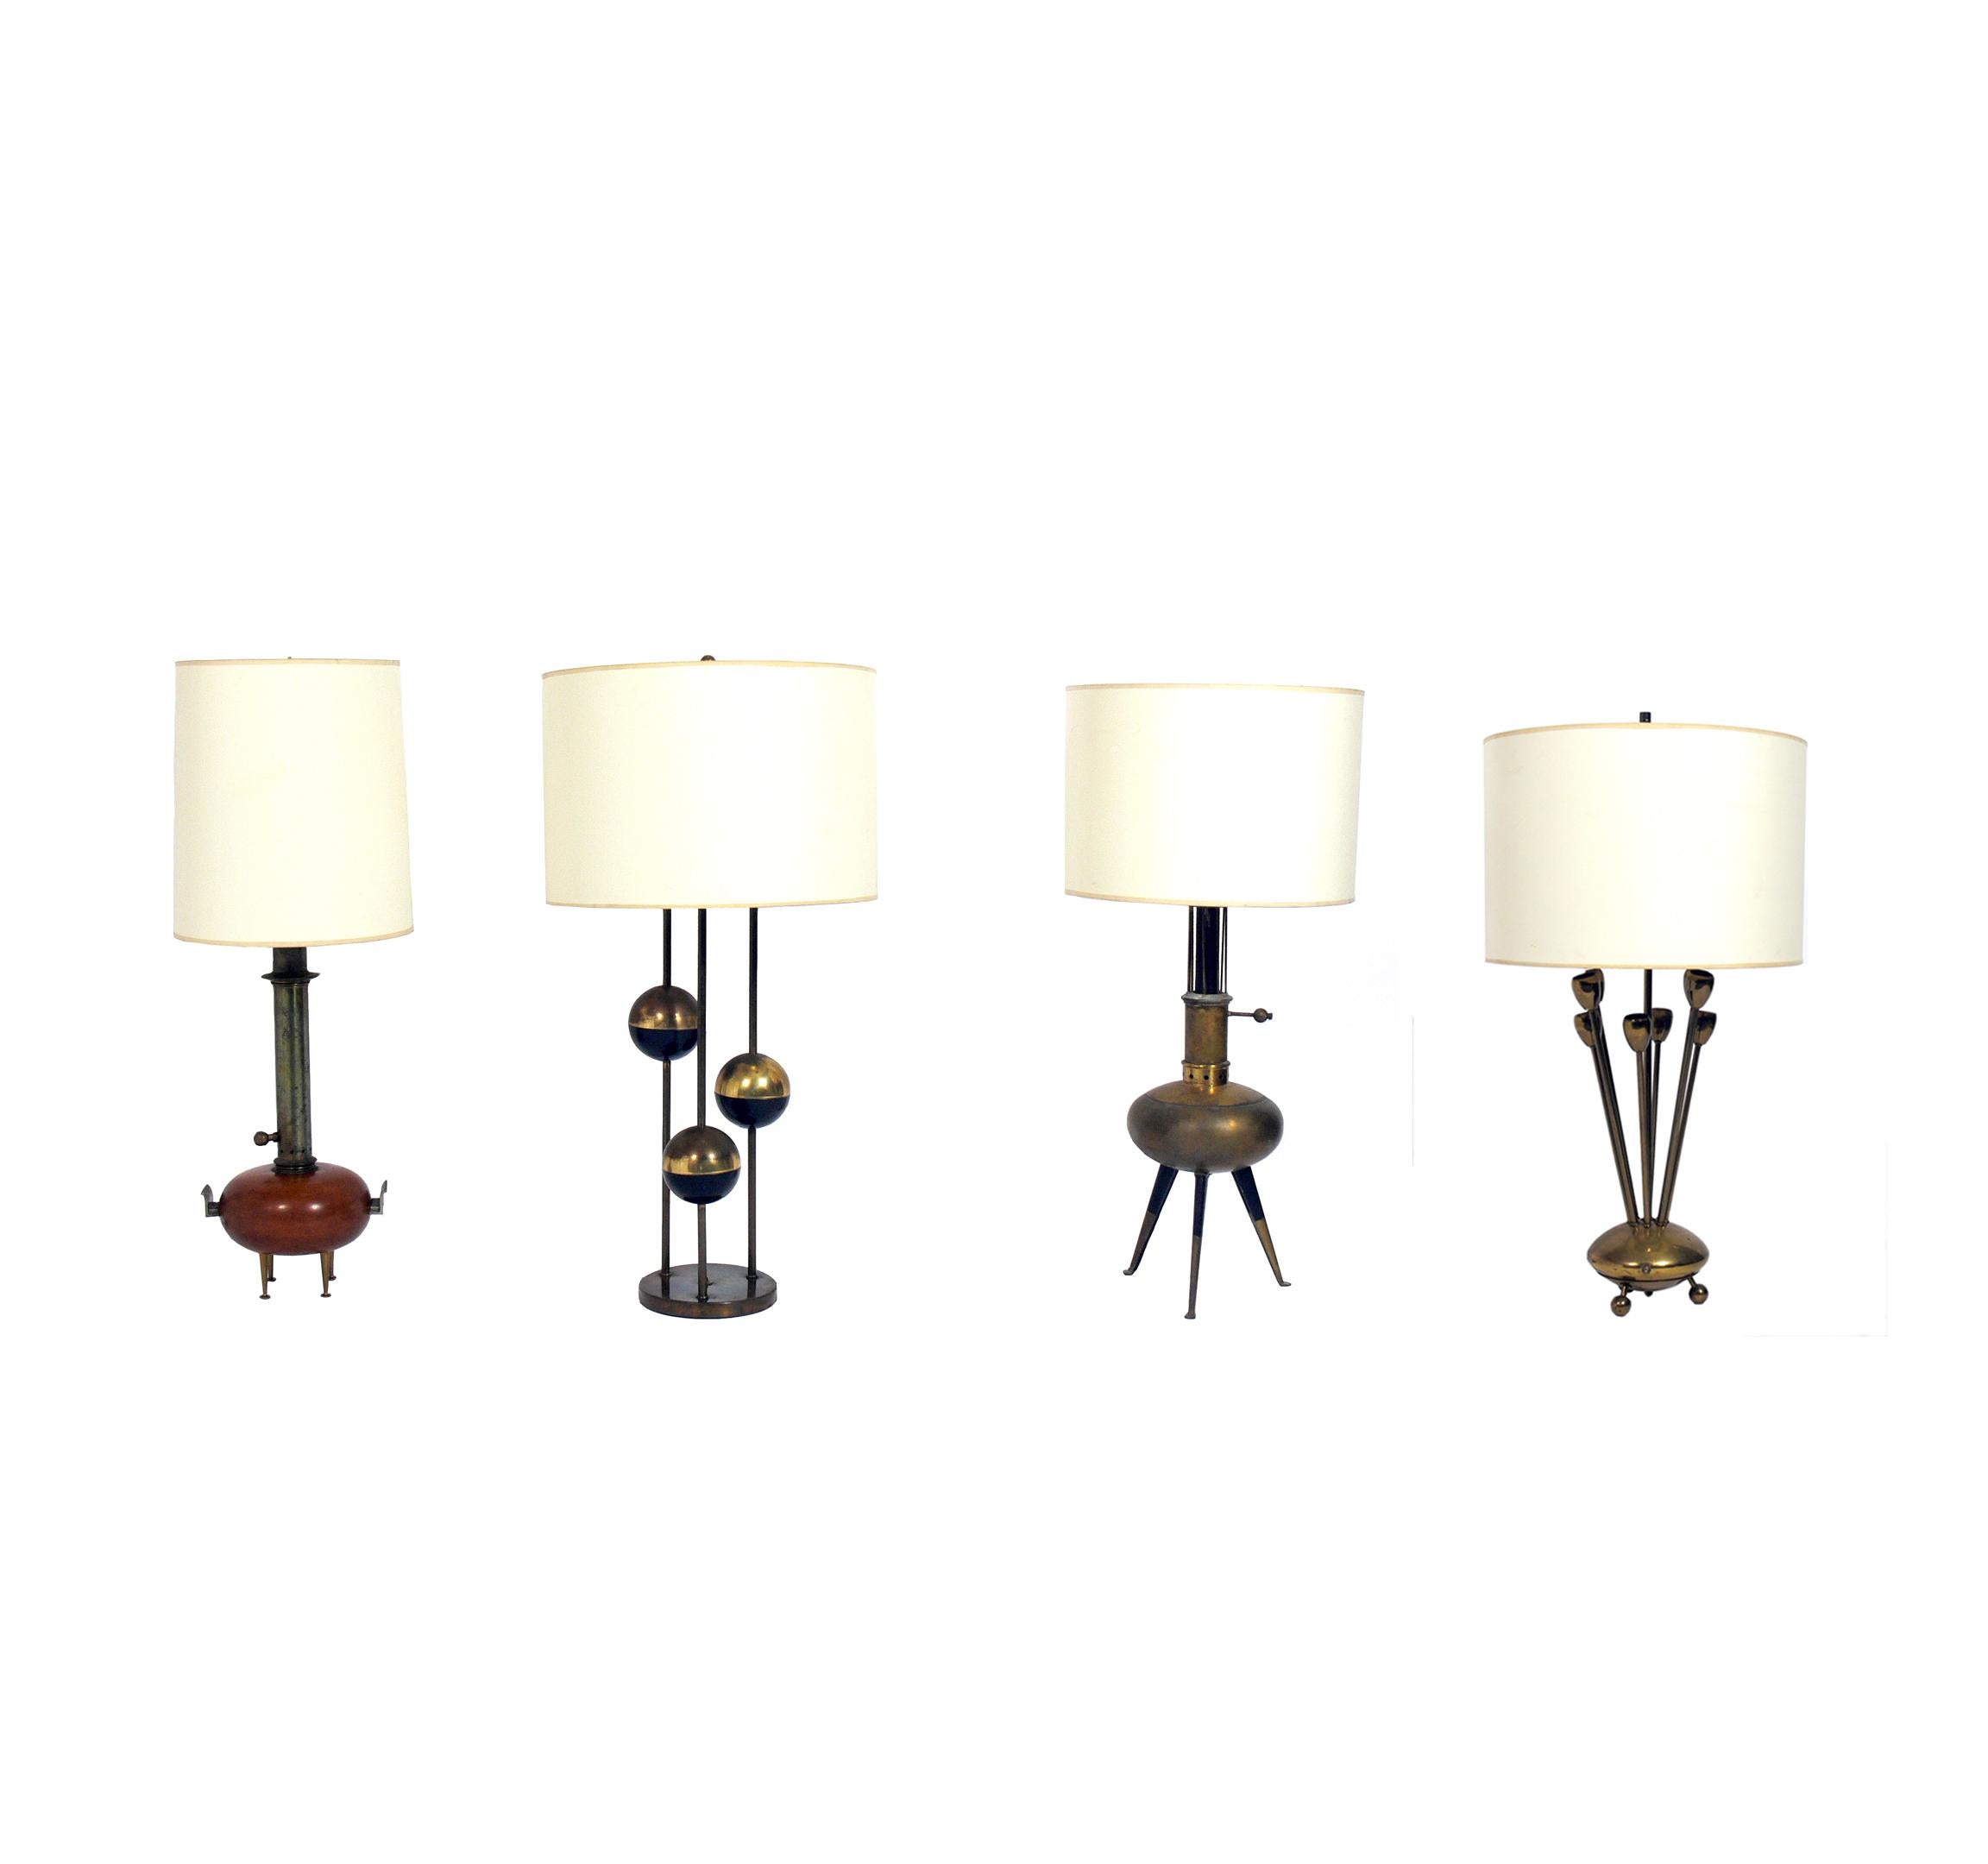 Selection of Italian Midccentury Lamps